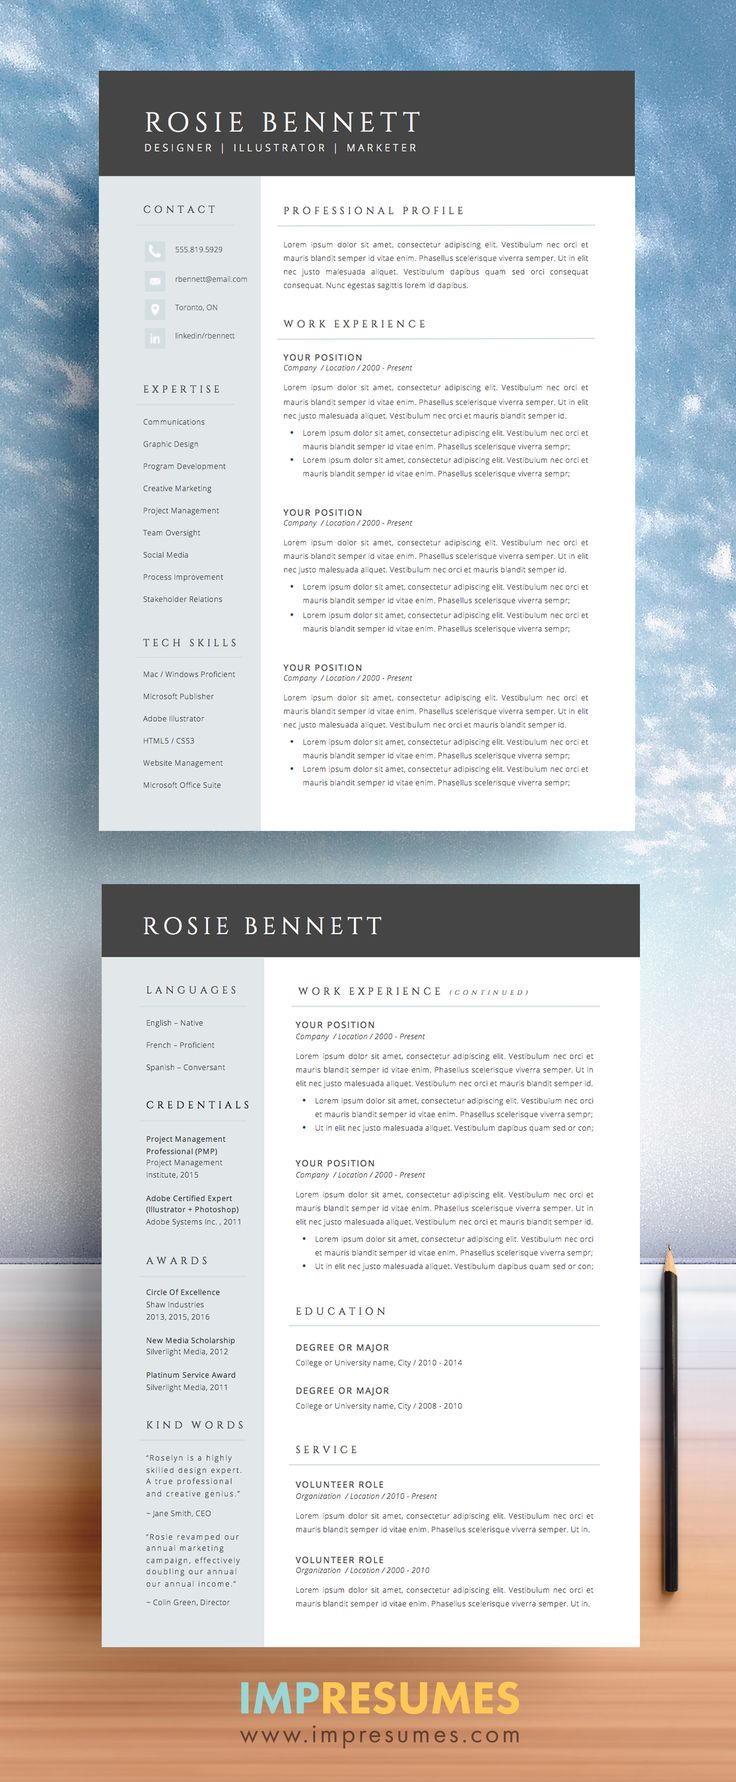 Chronological Resume Samples%0A Best     Free resume ideas on Pinterest   Resume  Resume work and Resume  templates